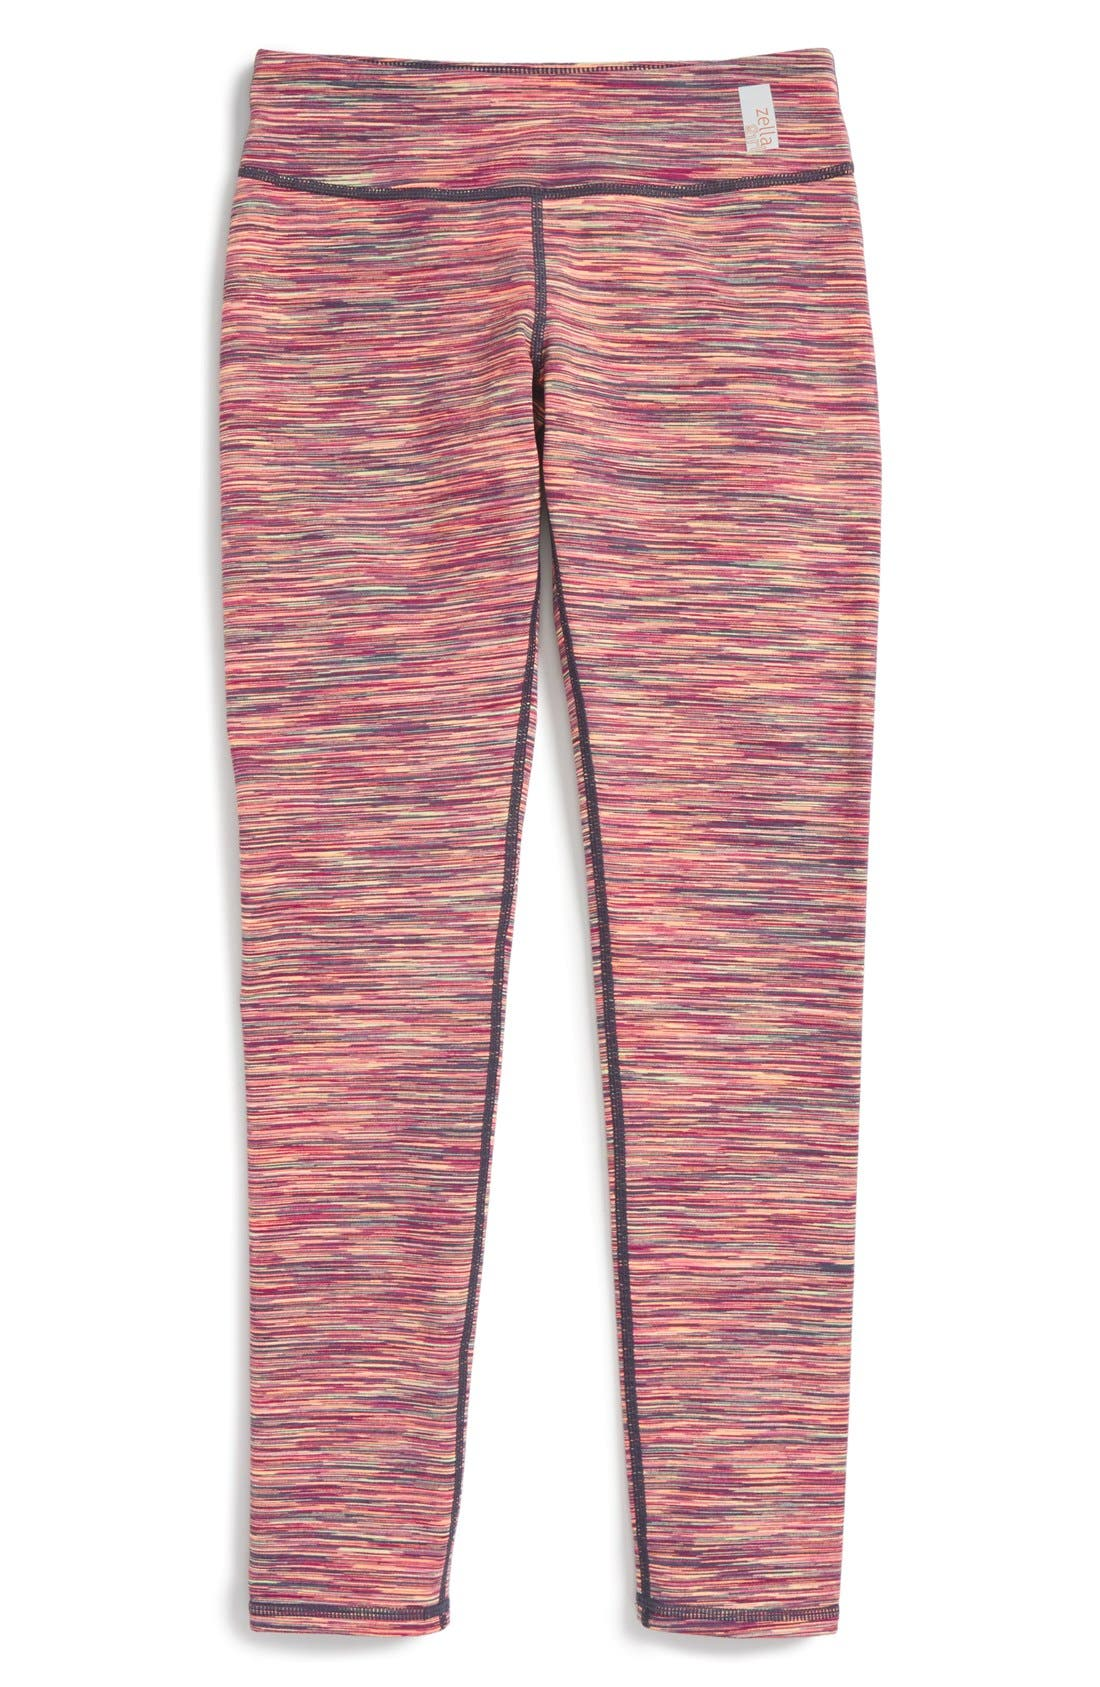 Alternate Image 1 Selected - Zella Girl 'Cosmic' Space Dye Leggings (Little Girls & Big Girls)